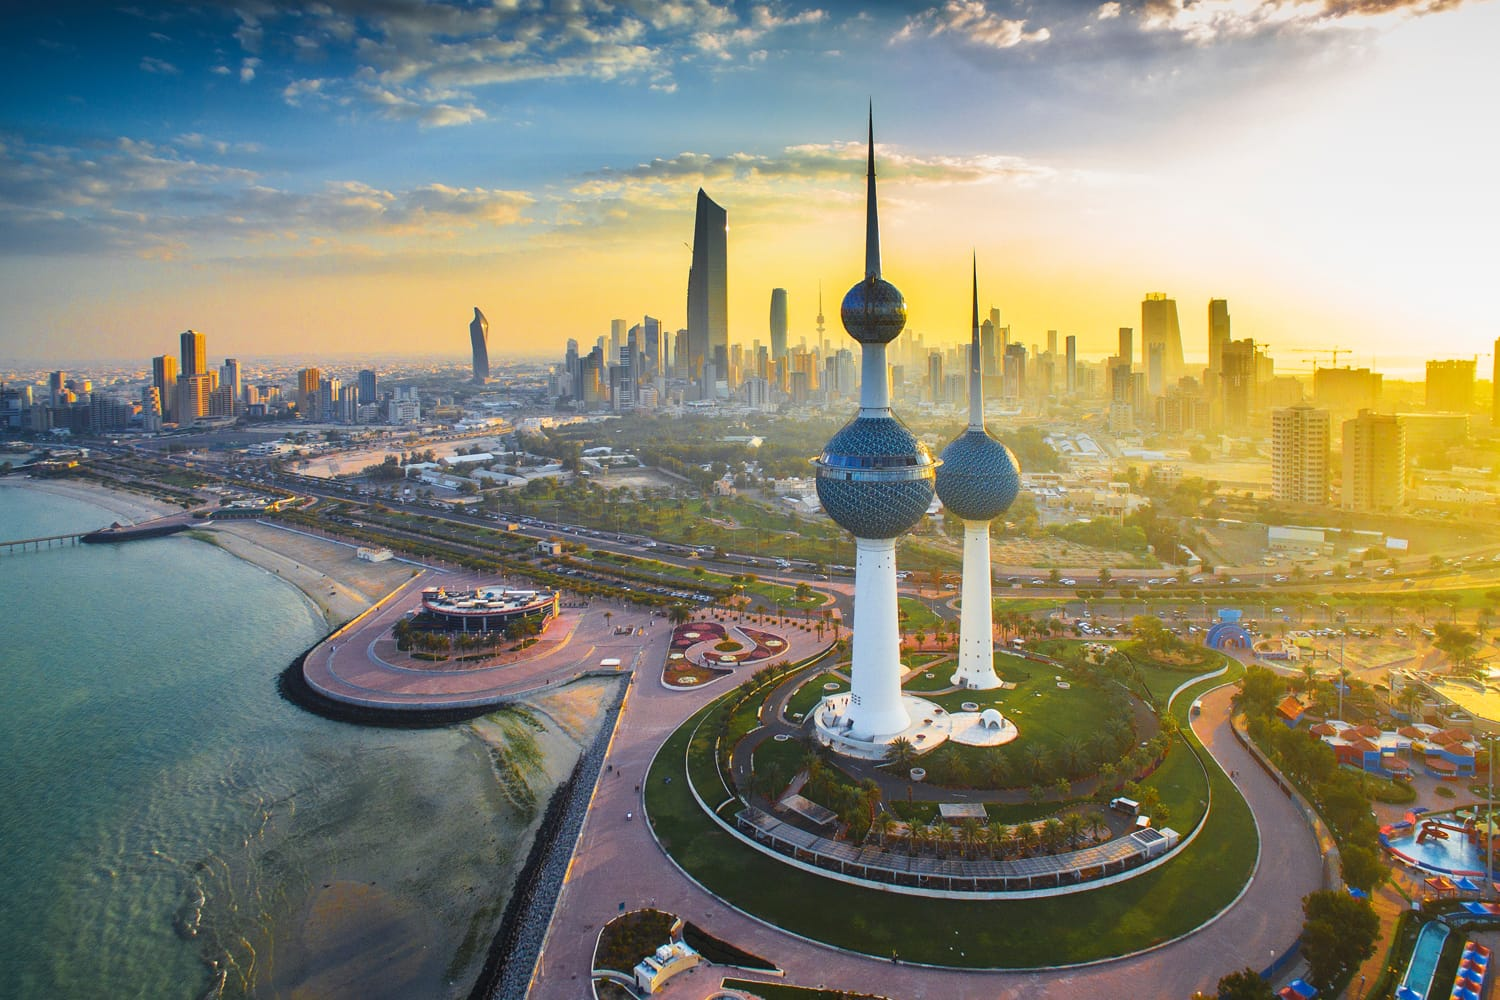 The Magnificent Kuwait Towers during Sunrise